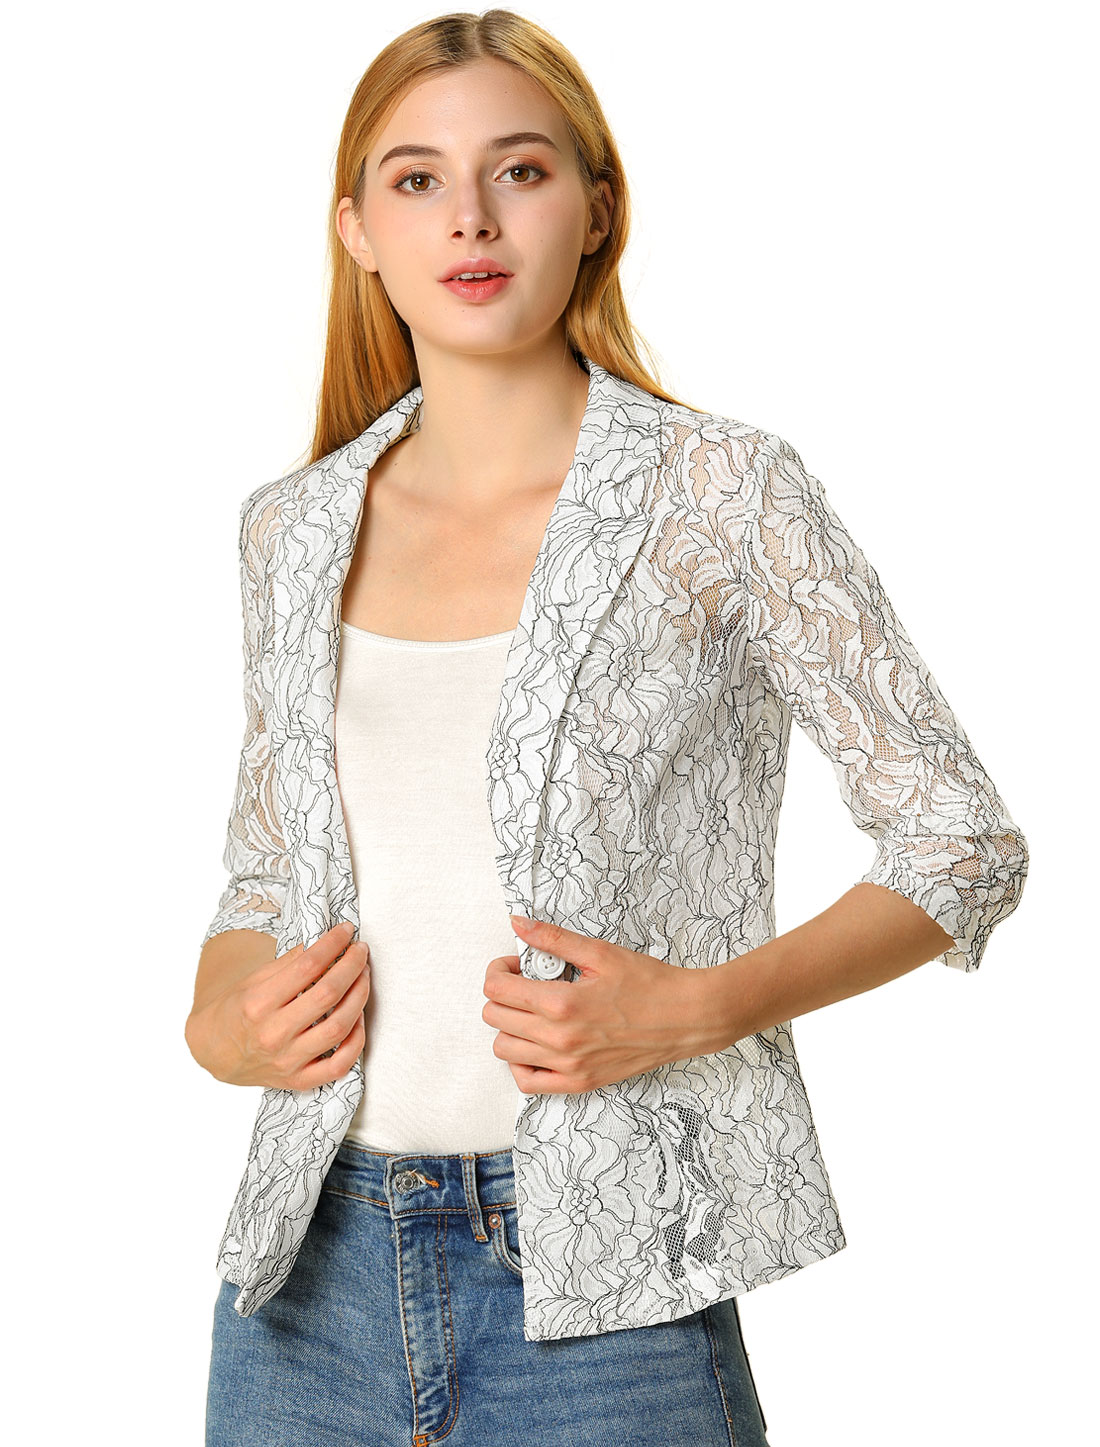 Women's 3/4 Sleeves Notched Lapel One-Button Lace Blazer White S (US 6)